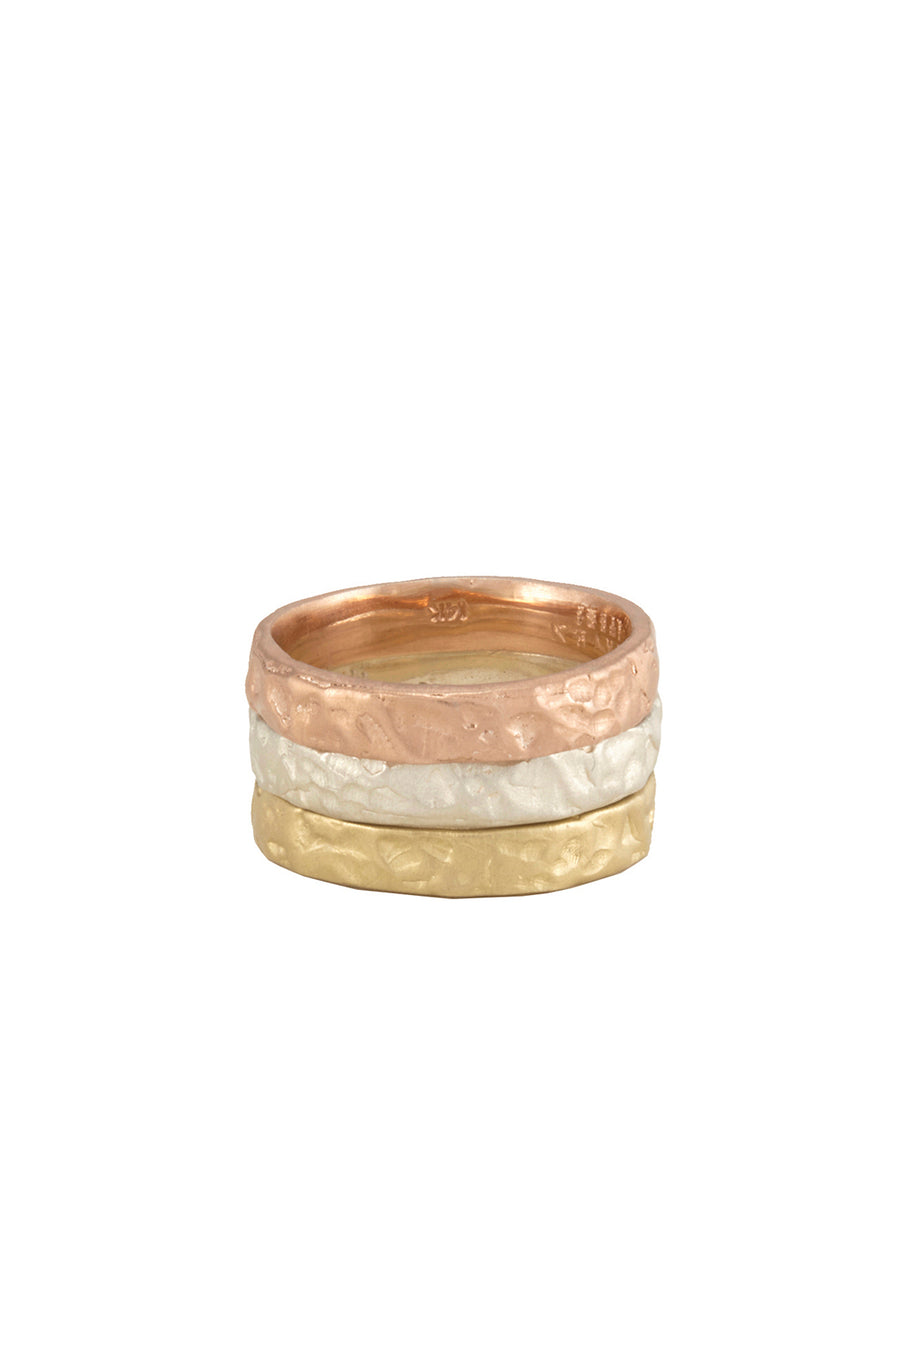 MARK ANTHONY RING 18kt GOLD